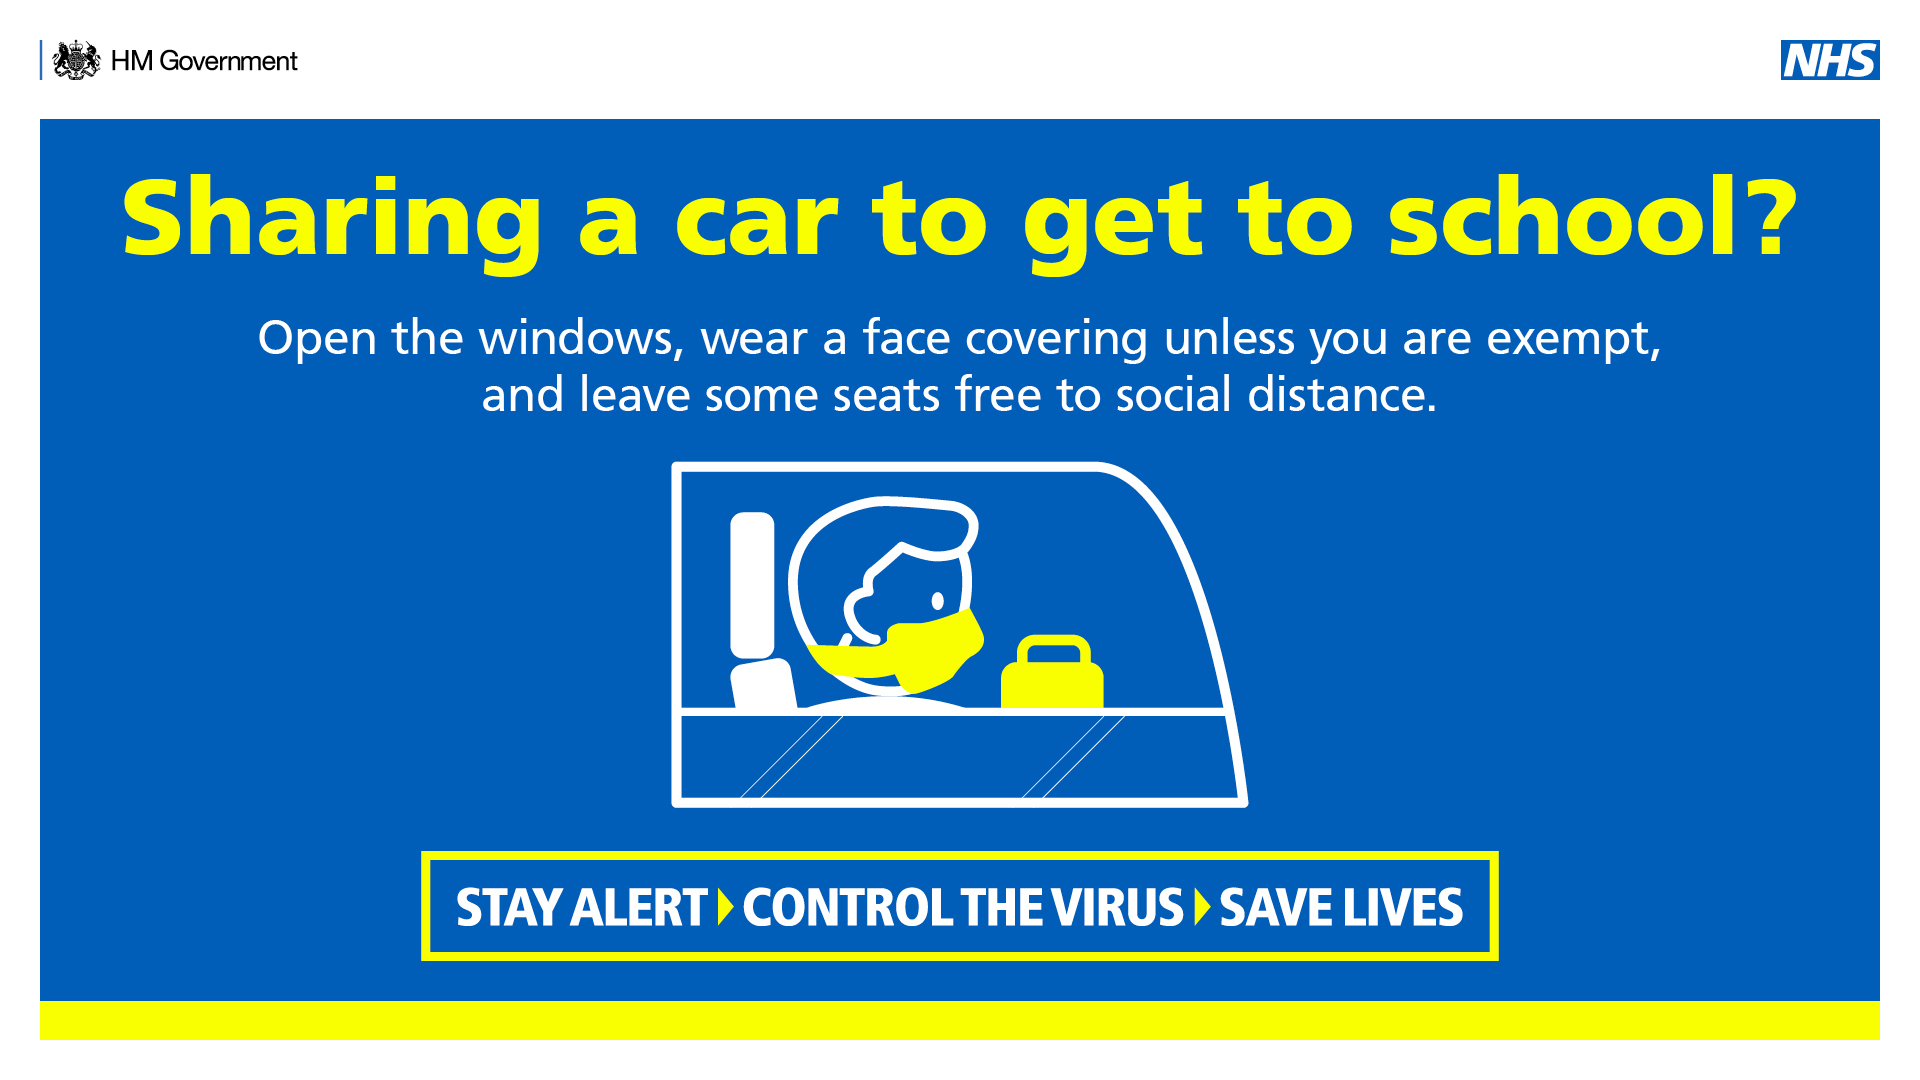 Sharing a car to get to school? Open the windows wear a face covering unless you are exempt, and leave some seats free to social distance. STAY ALERT. CONTROL THE VIRUS. SAVE LIVES.